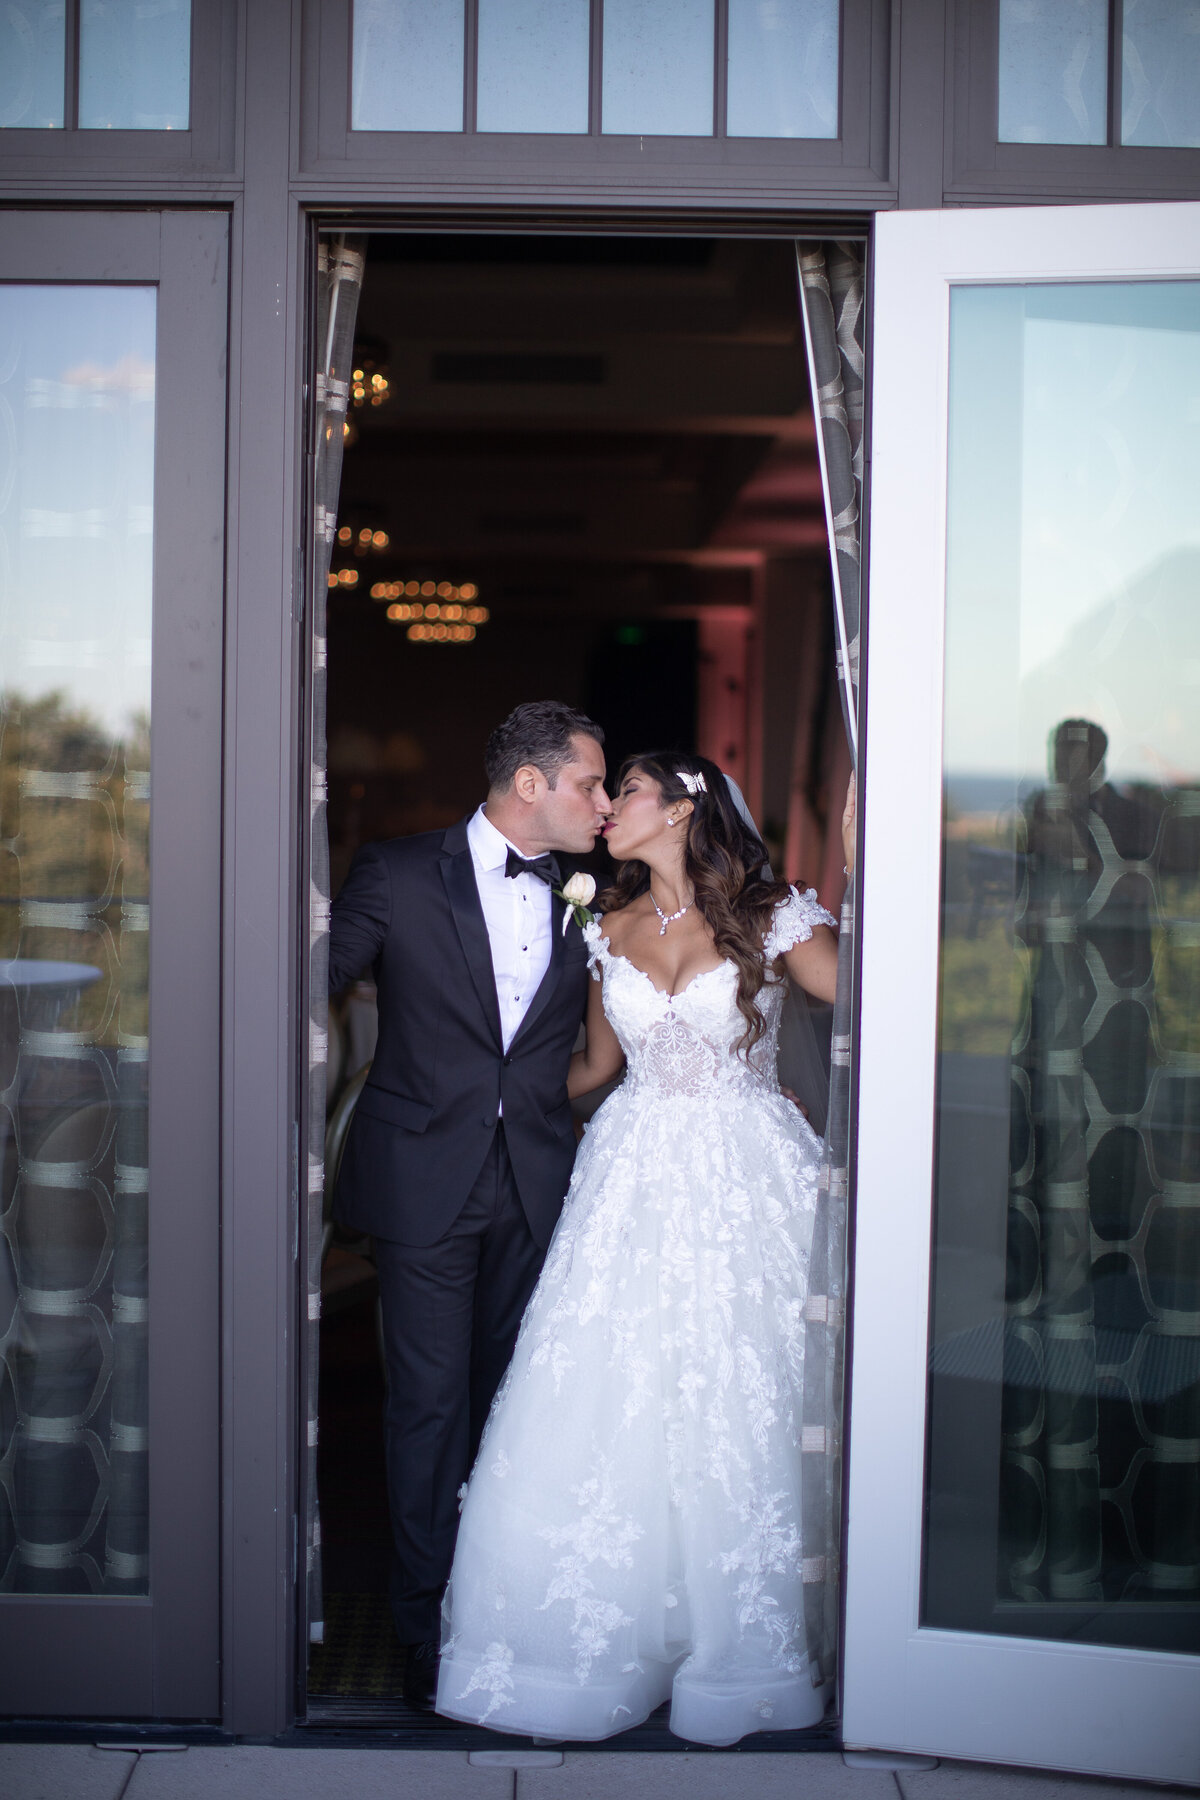 2018-Mandy-rich-Wedding-by-Djamel-Wedding-Photographer-585